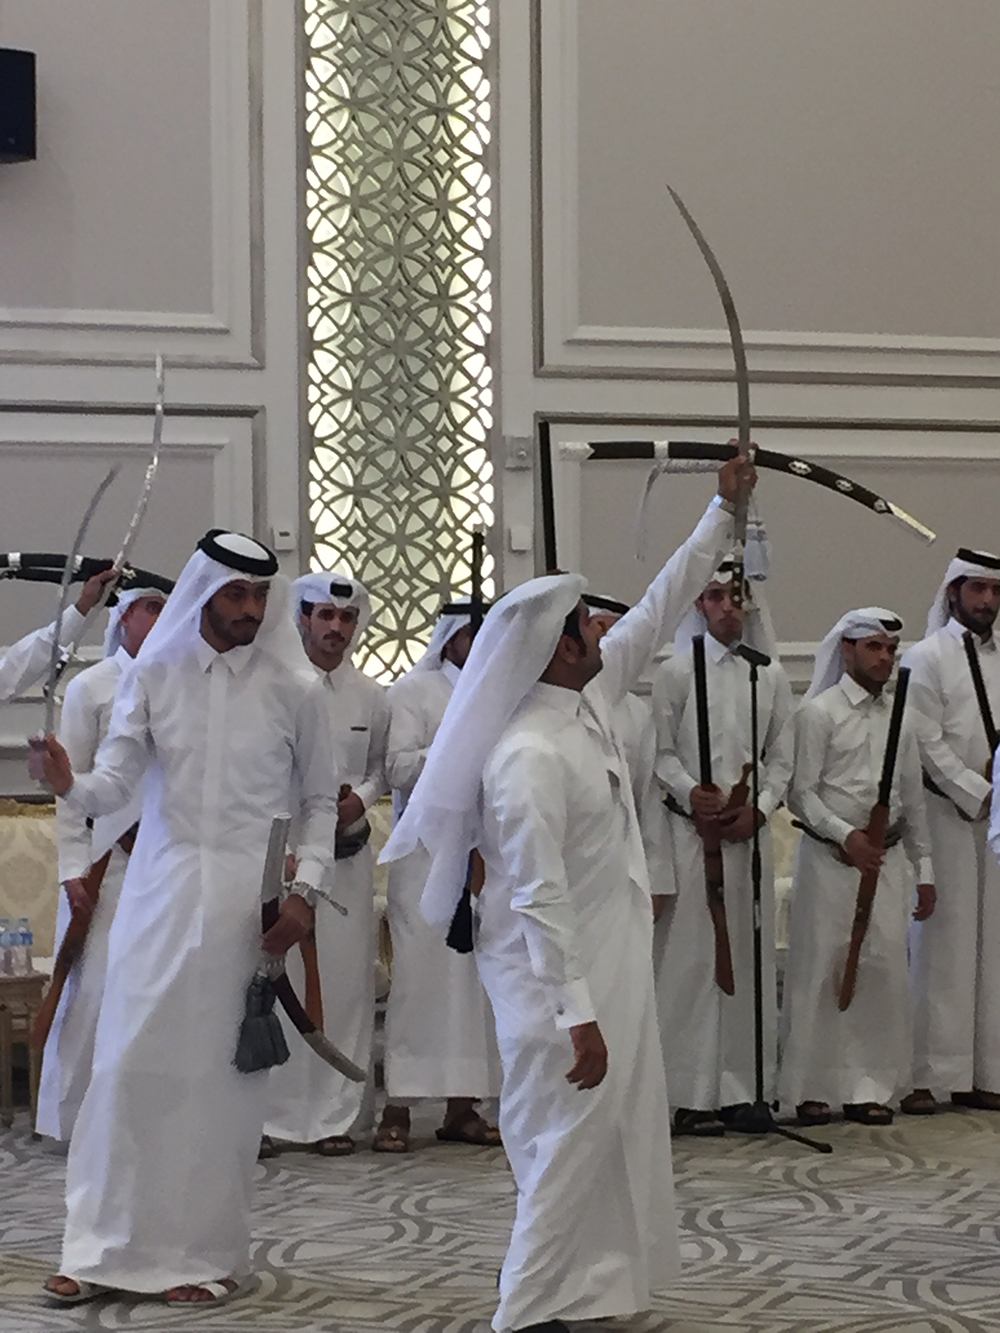 Sword Dance at Qatari Wedding